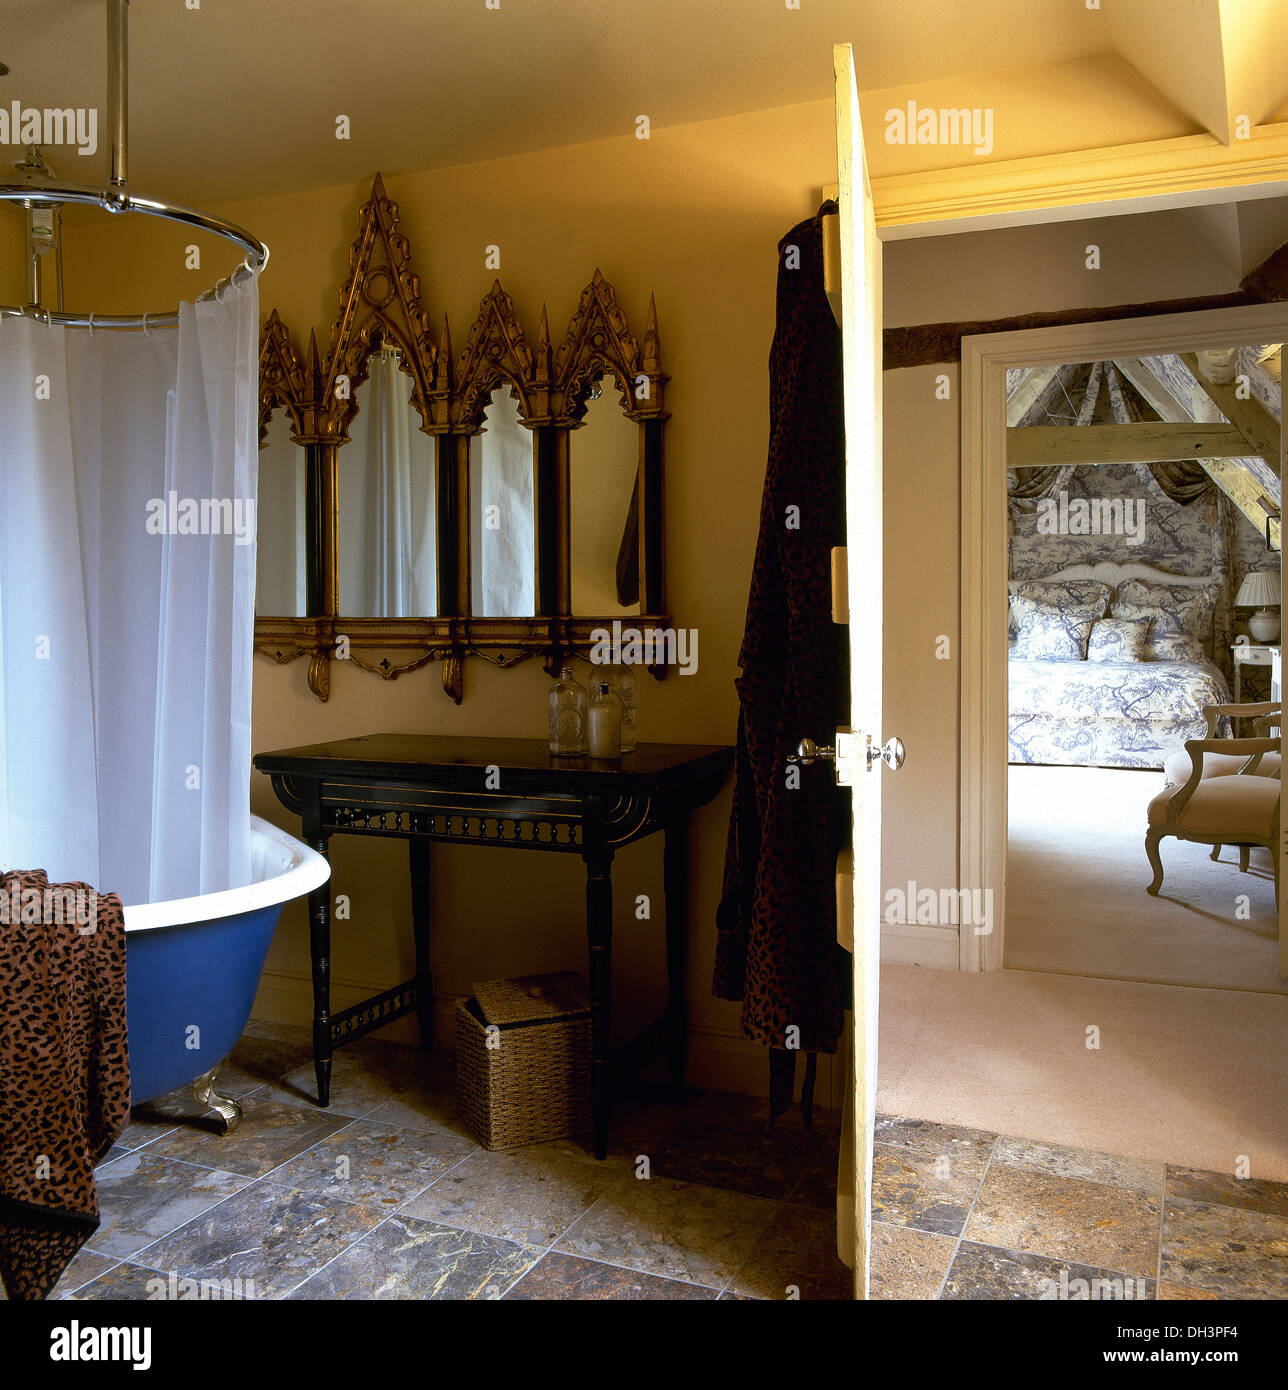 Gothic Style Mirror Above Metal Table In Bathroom With Shower Curtain On  Circular Frame Above Roll Top Bath In Country Bathroom